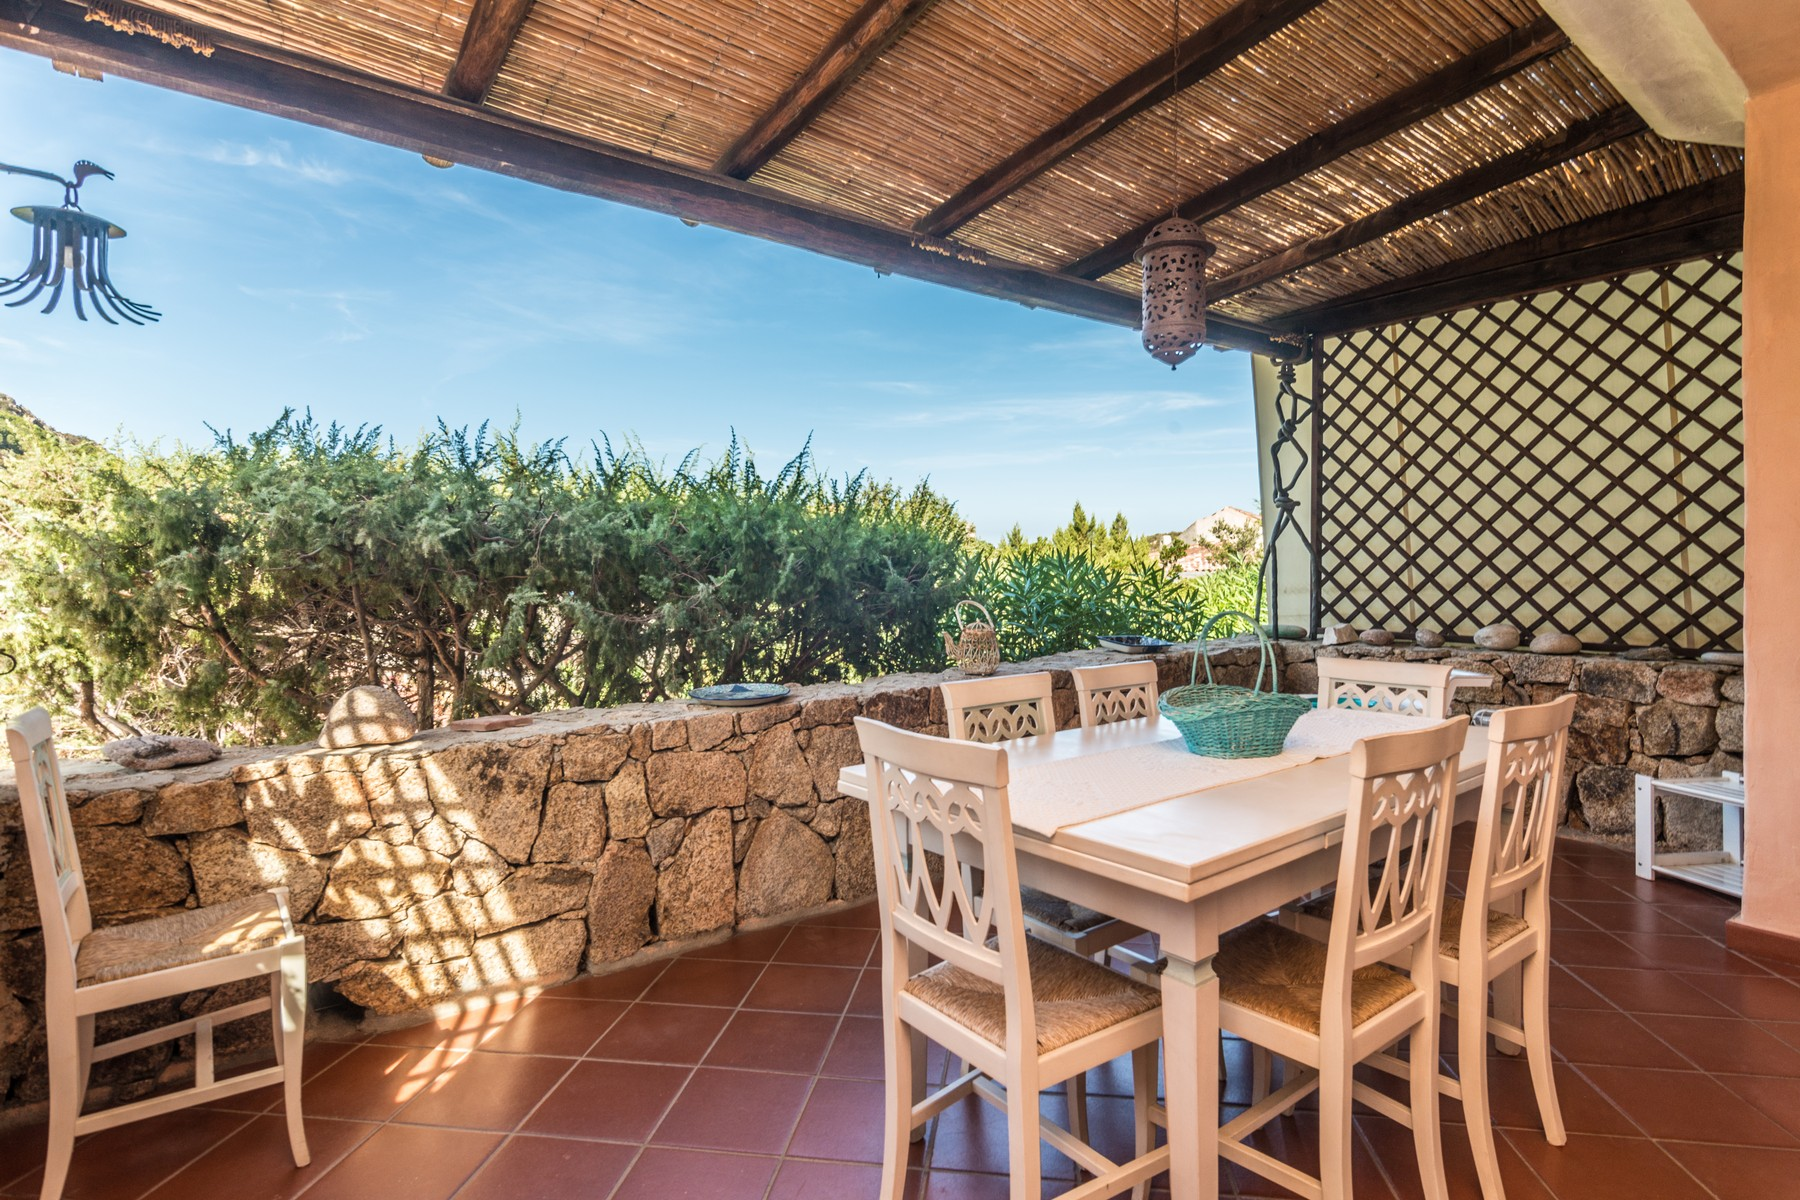 Apartamento por un Venta en Beautiful apartment in residence with sea view Porto Cervo Porto Cervo, Olbia Tempio 07020 Italia